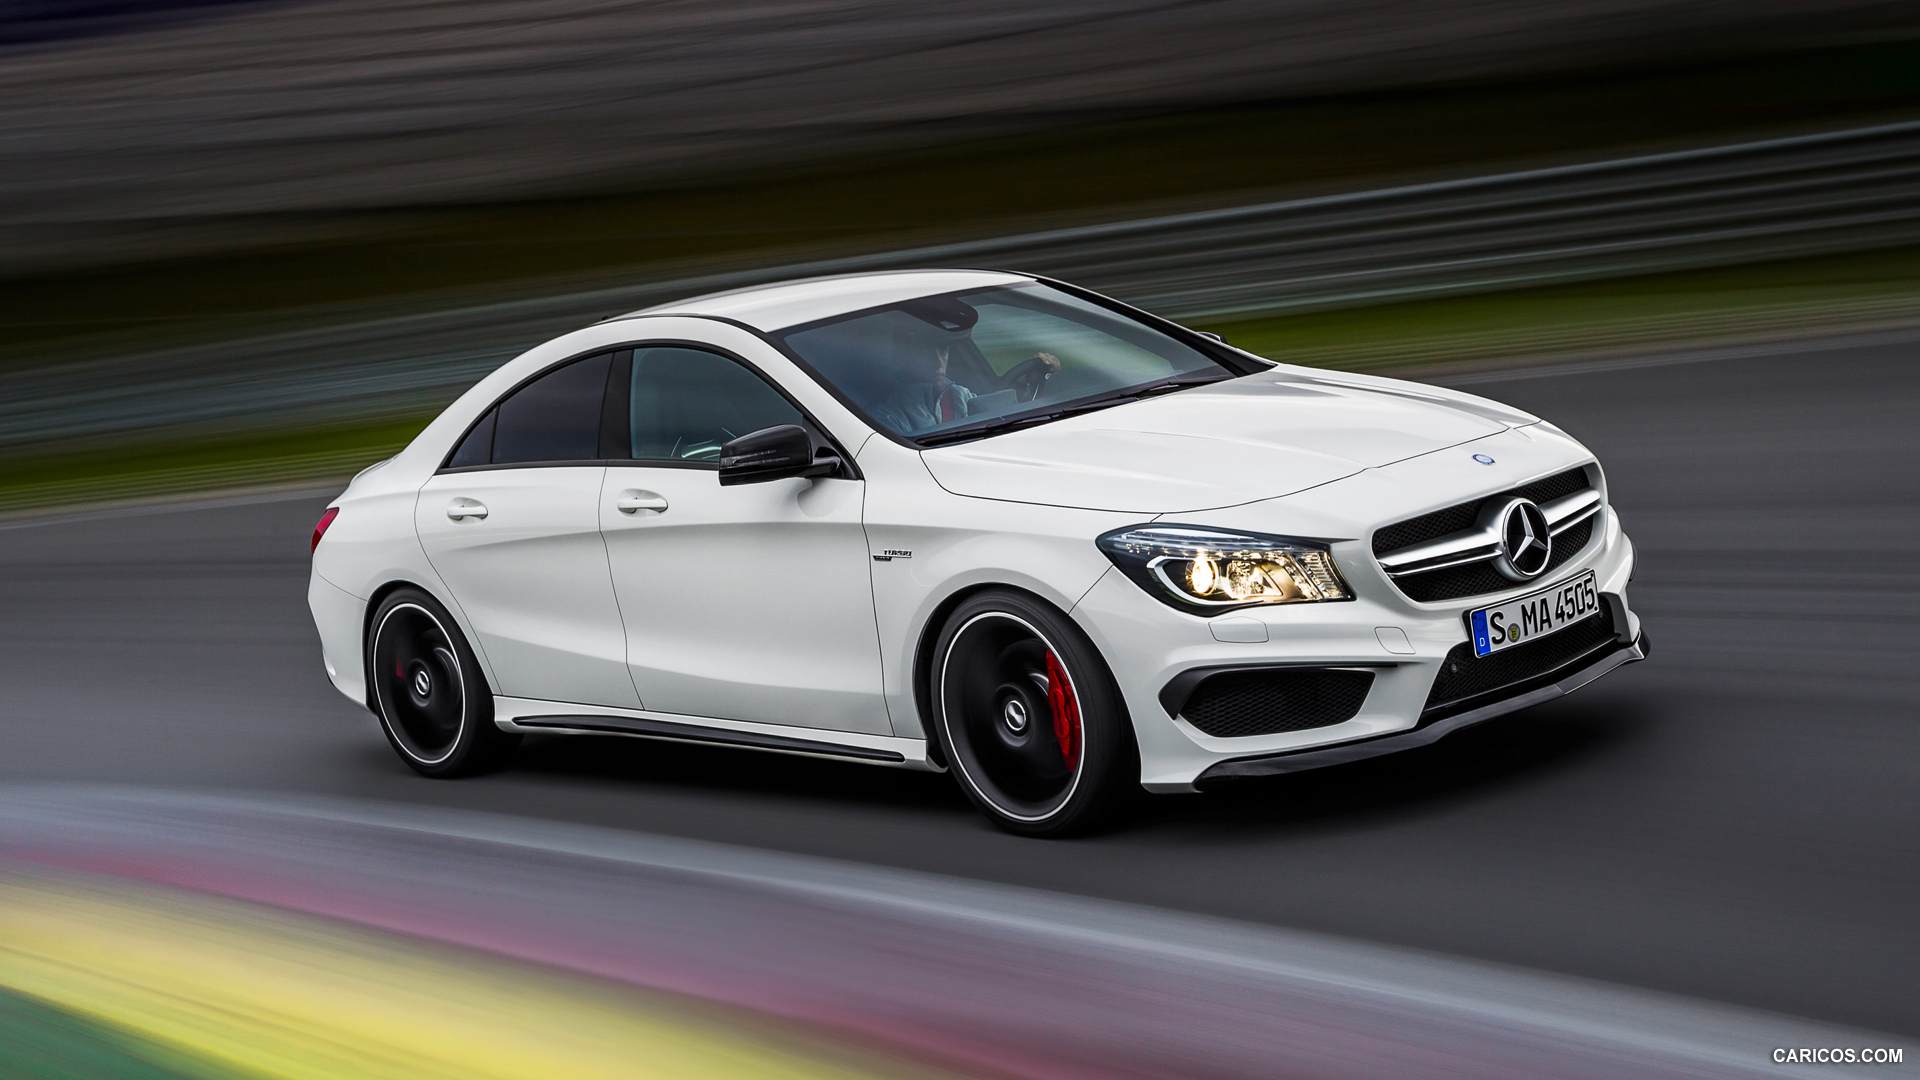 2014 Mercedes Benz CLA 45 AMG   Front HD Wallpaper 14 1920x1080